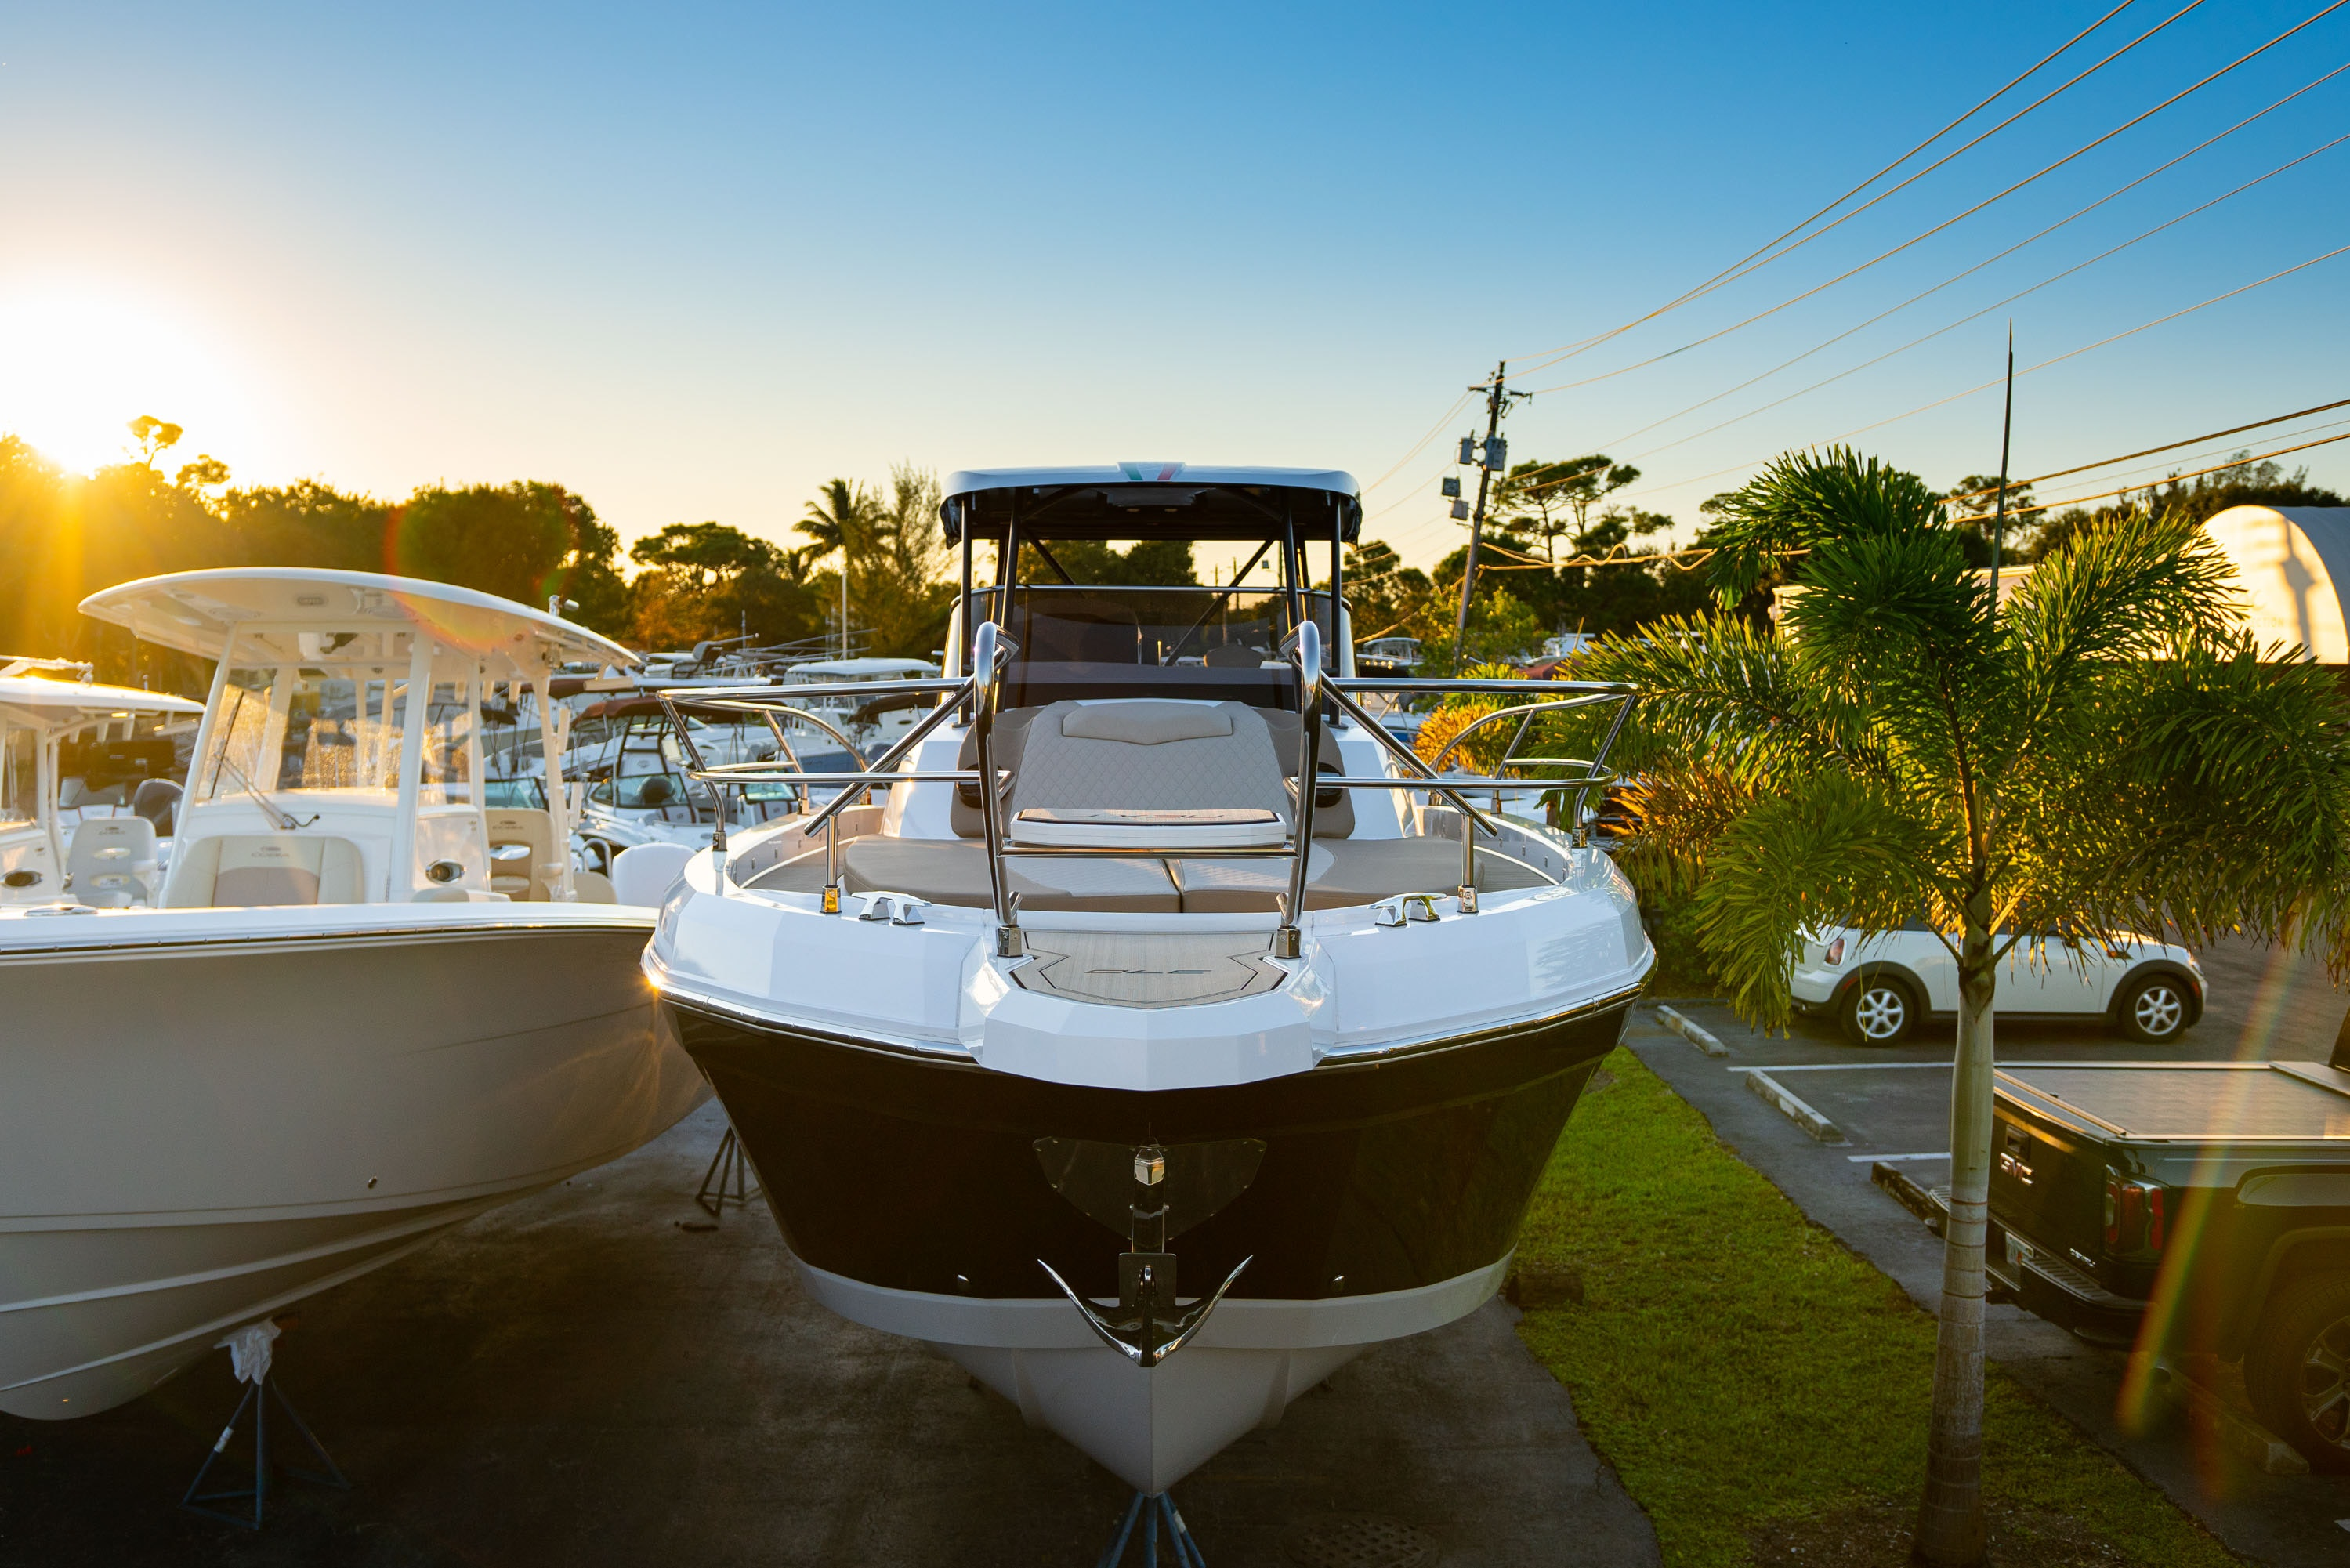 Thumbnail 1 for New 2019 Ranieri Next 370 SH boat for sale in West Palm Beach, FL